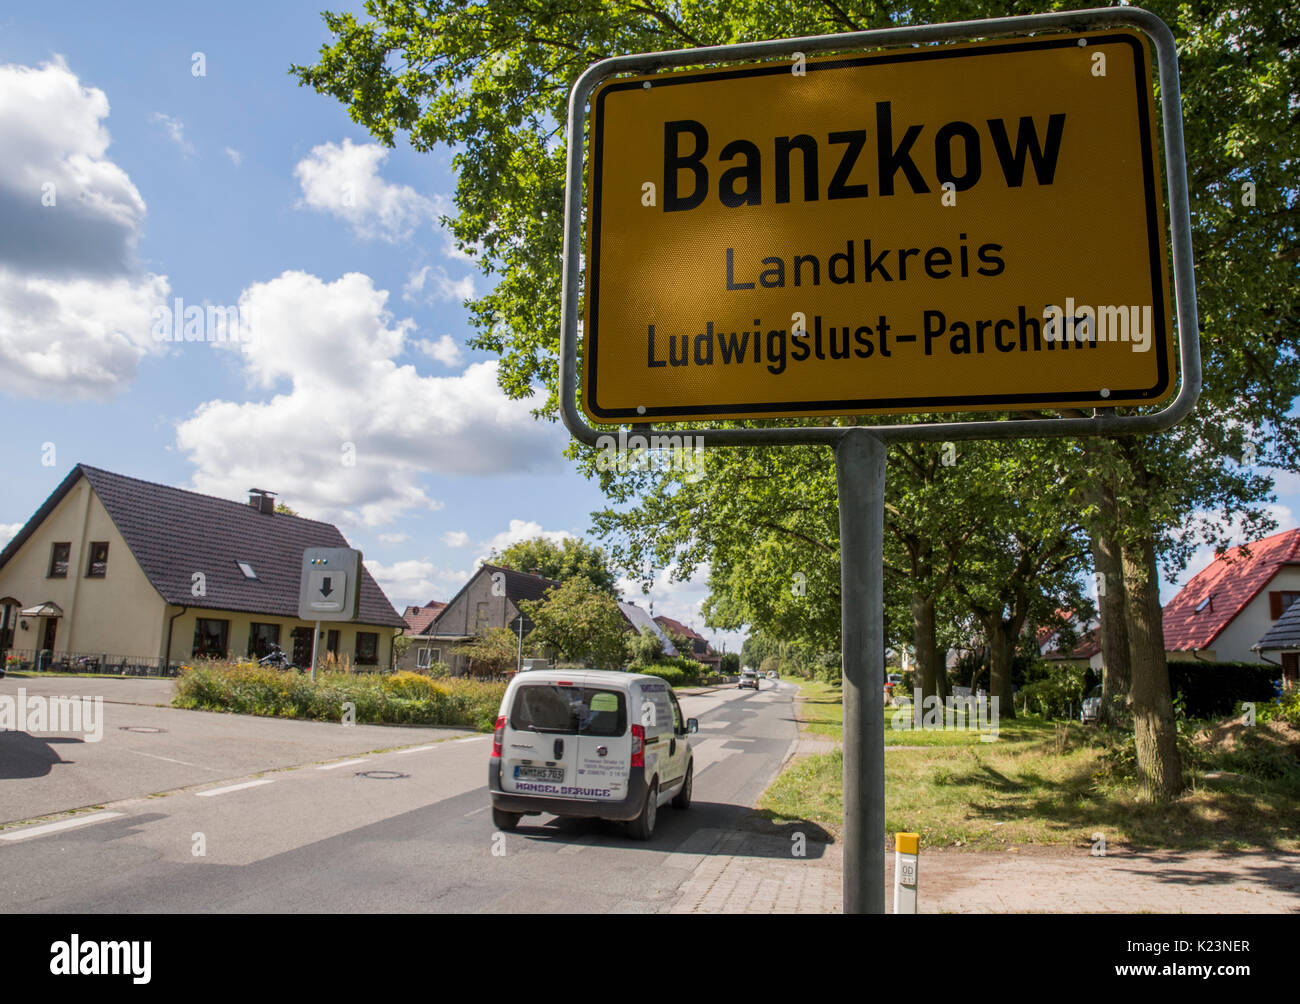 Banzkow, Germany. 28th Aug, 2017. View of the town entrance sign in Banzkow, Germany, 28 August 2017. Officers of the Federal Office for Criminal Investigation and the federal police searched apartments and offices in several places in Mecklenburg-Western Pomerania. The preparation of a subversive act of violence is suspected. Photo: Jens Büttner/dpa-Zentralbild/dpa/Alamy Live News - Stock Image